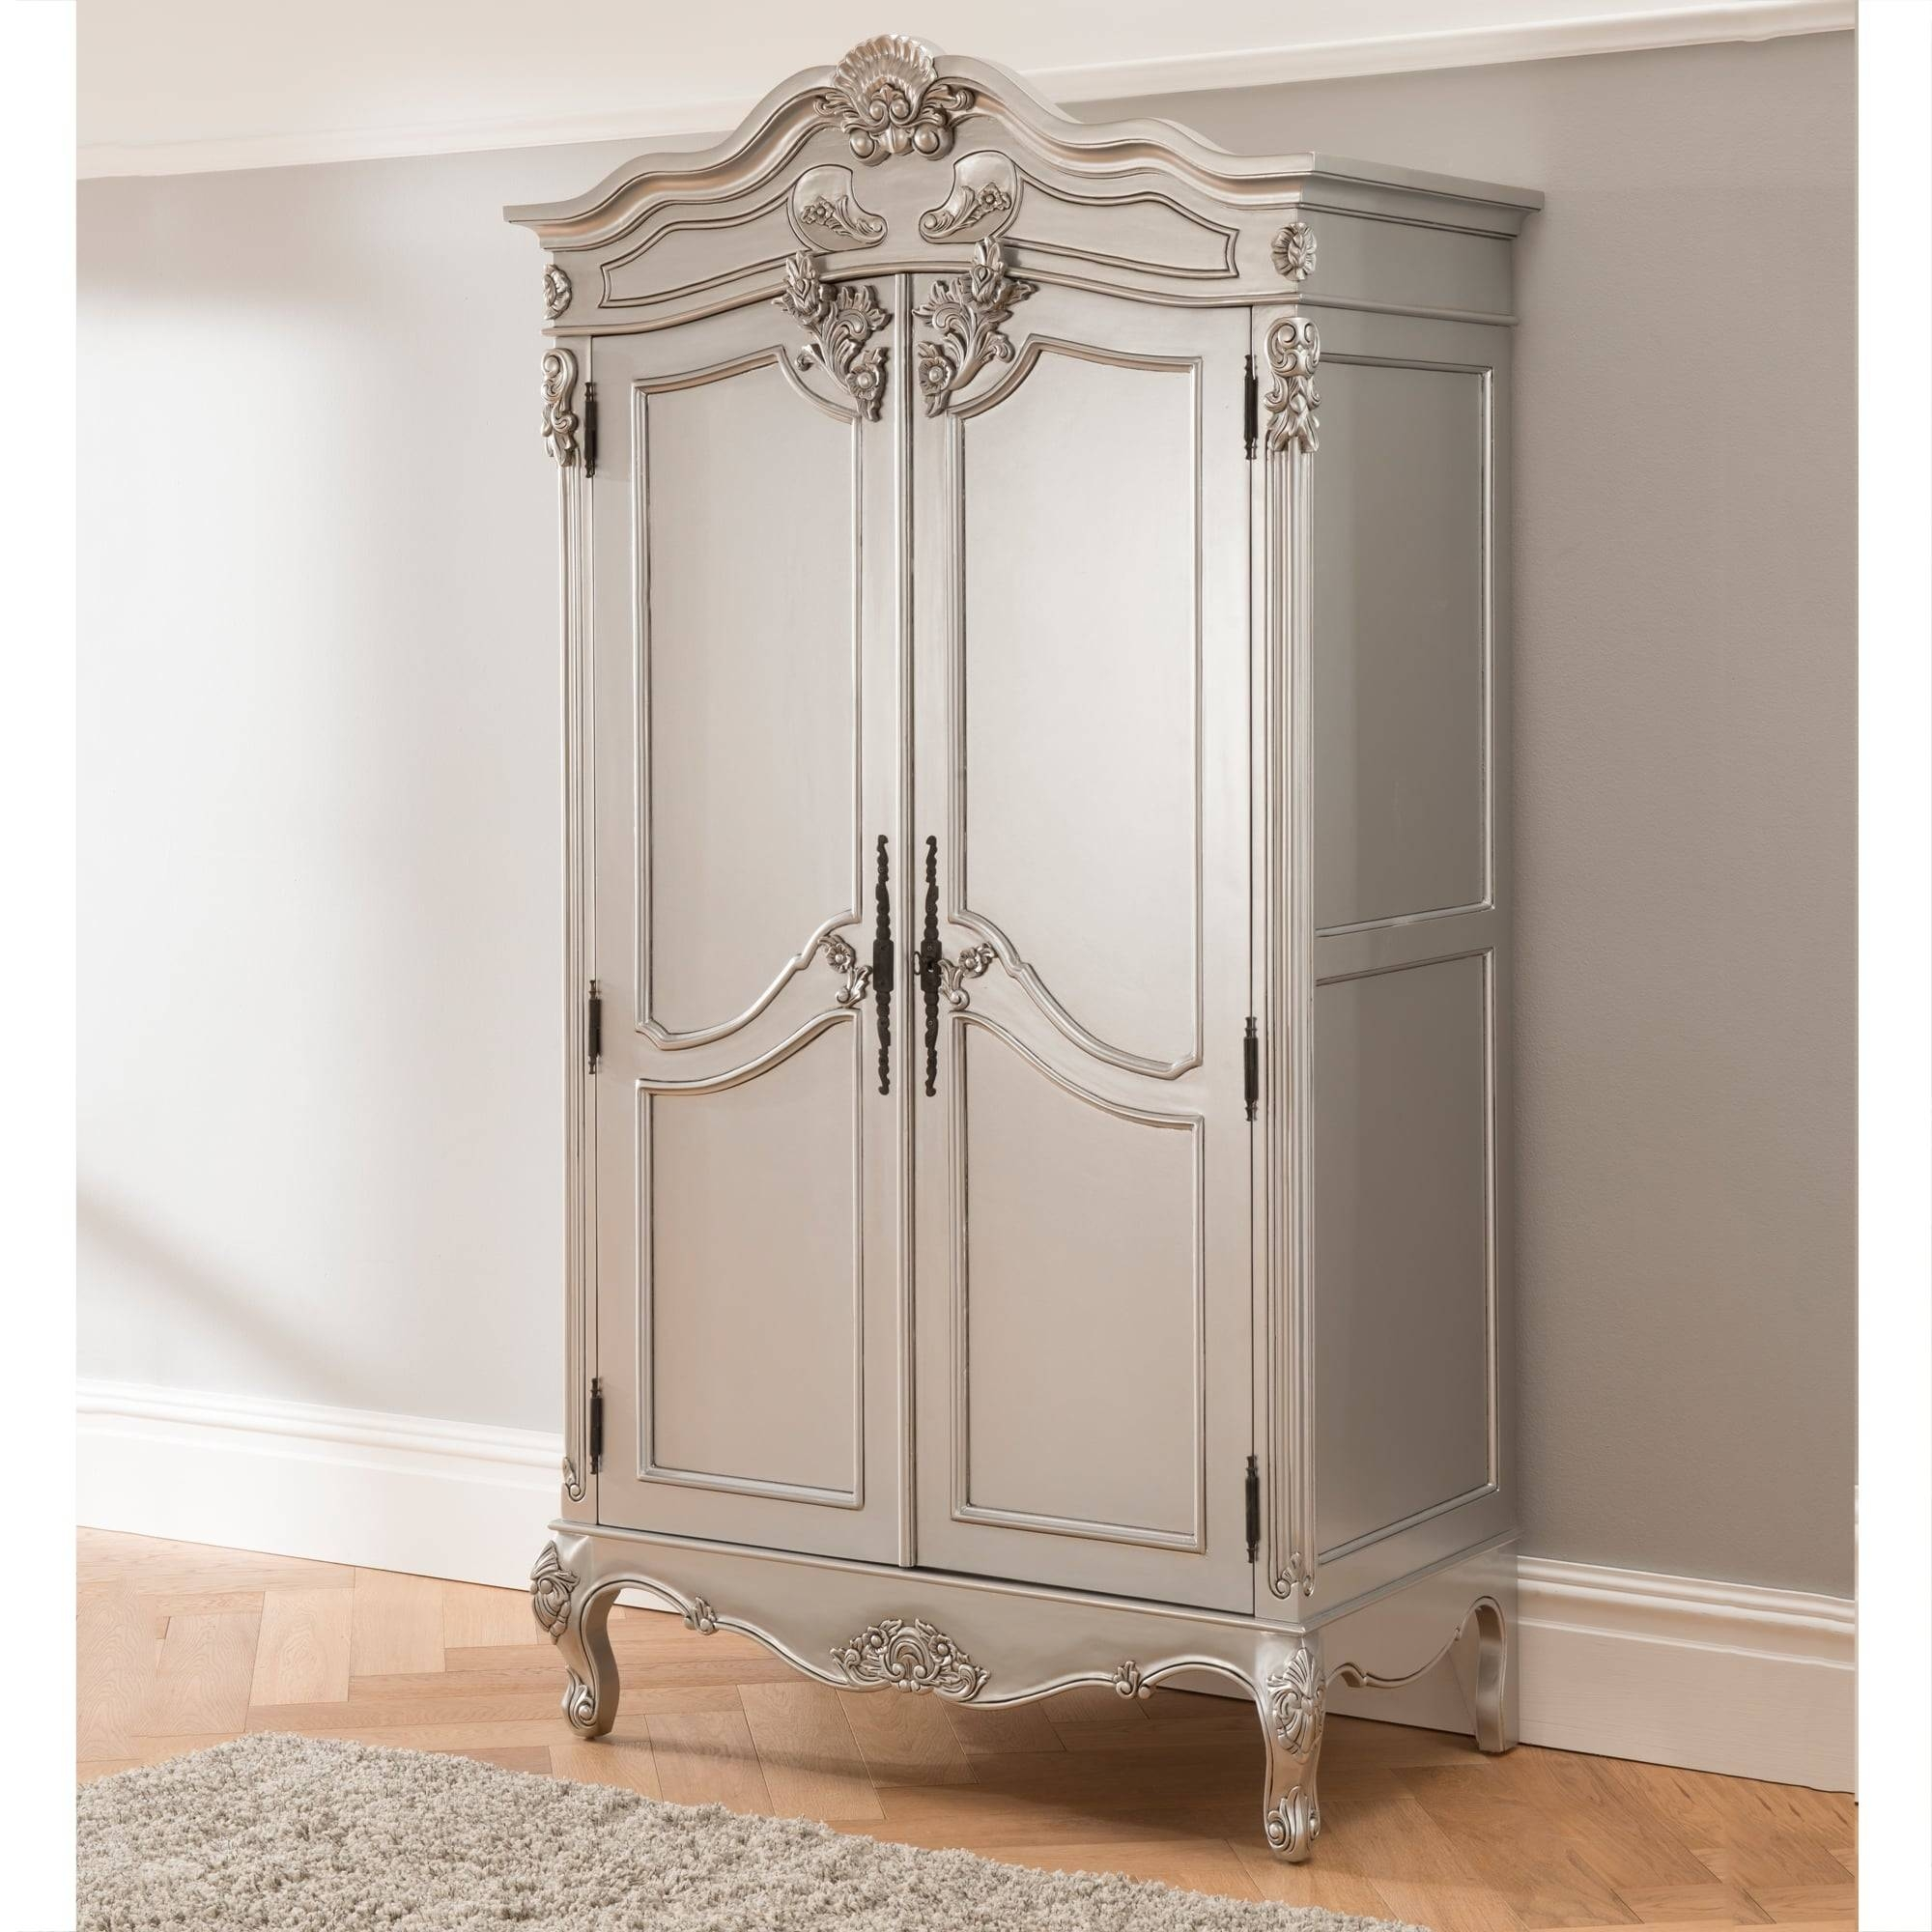 Baroque Antique French Wardrobe Works Exceptional Alongside Our within Antique French Wardrobes (Image 6 of 15)